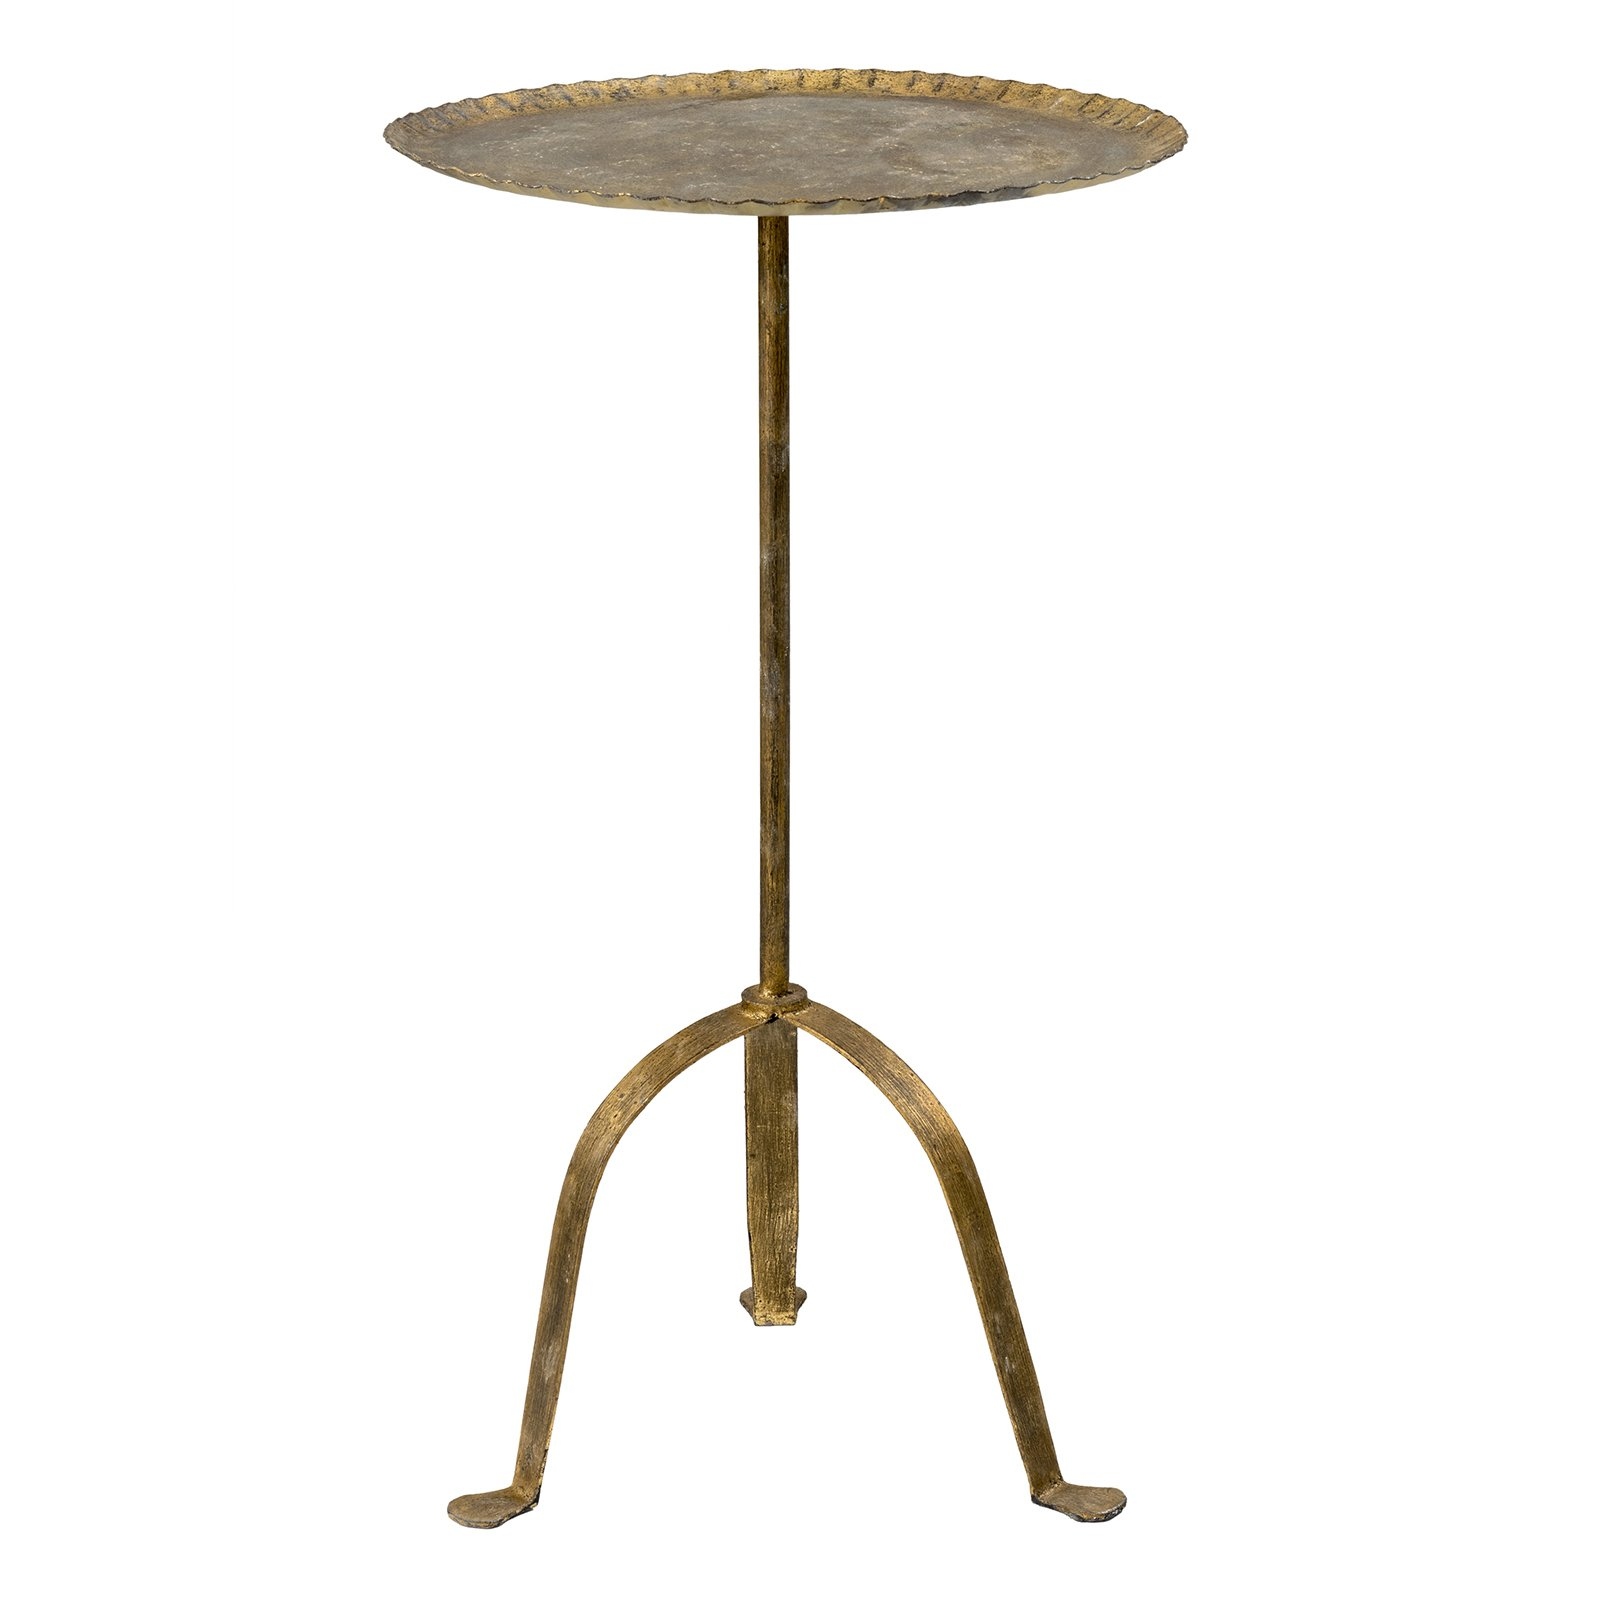 east main hooper gold round aluminum accent table free mains console shipping today red bedroom lamps west elm lamp coffee unique bedside tables modern glass designs blue pottery